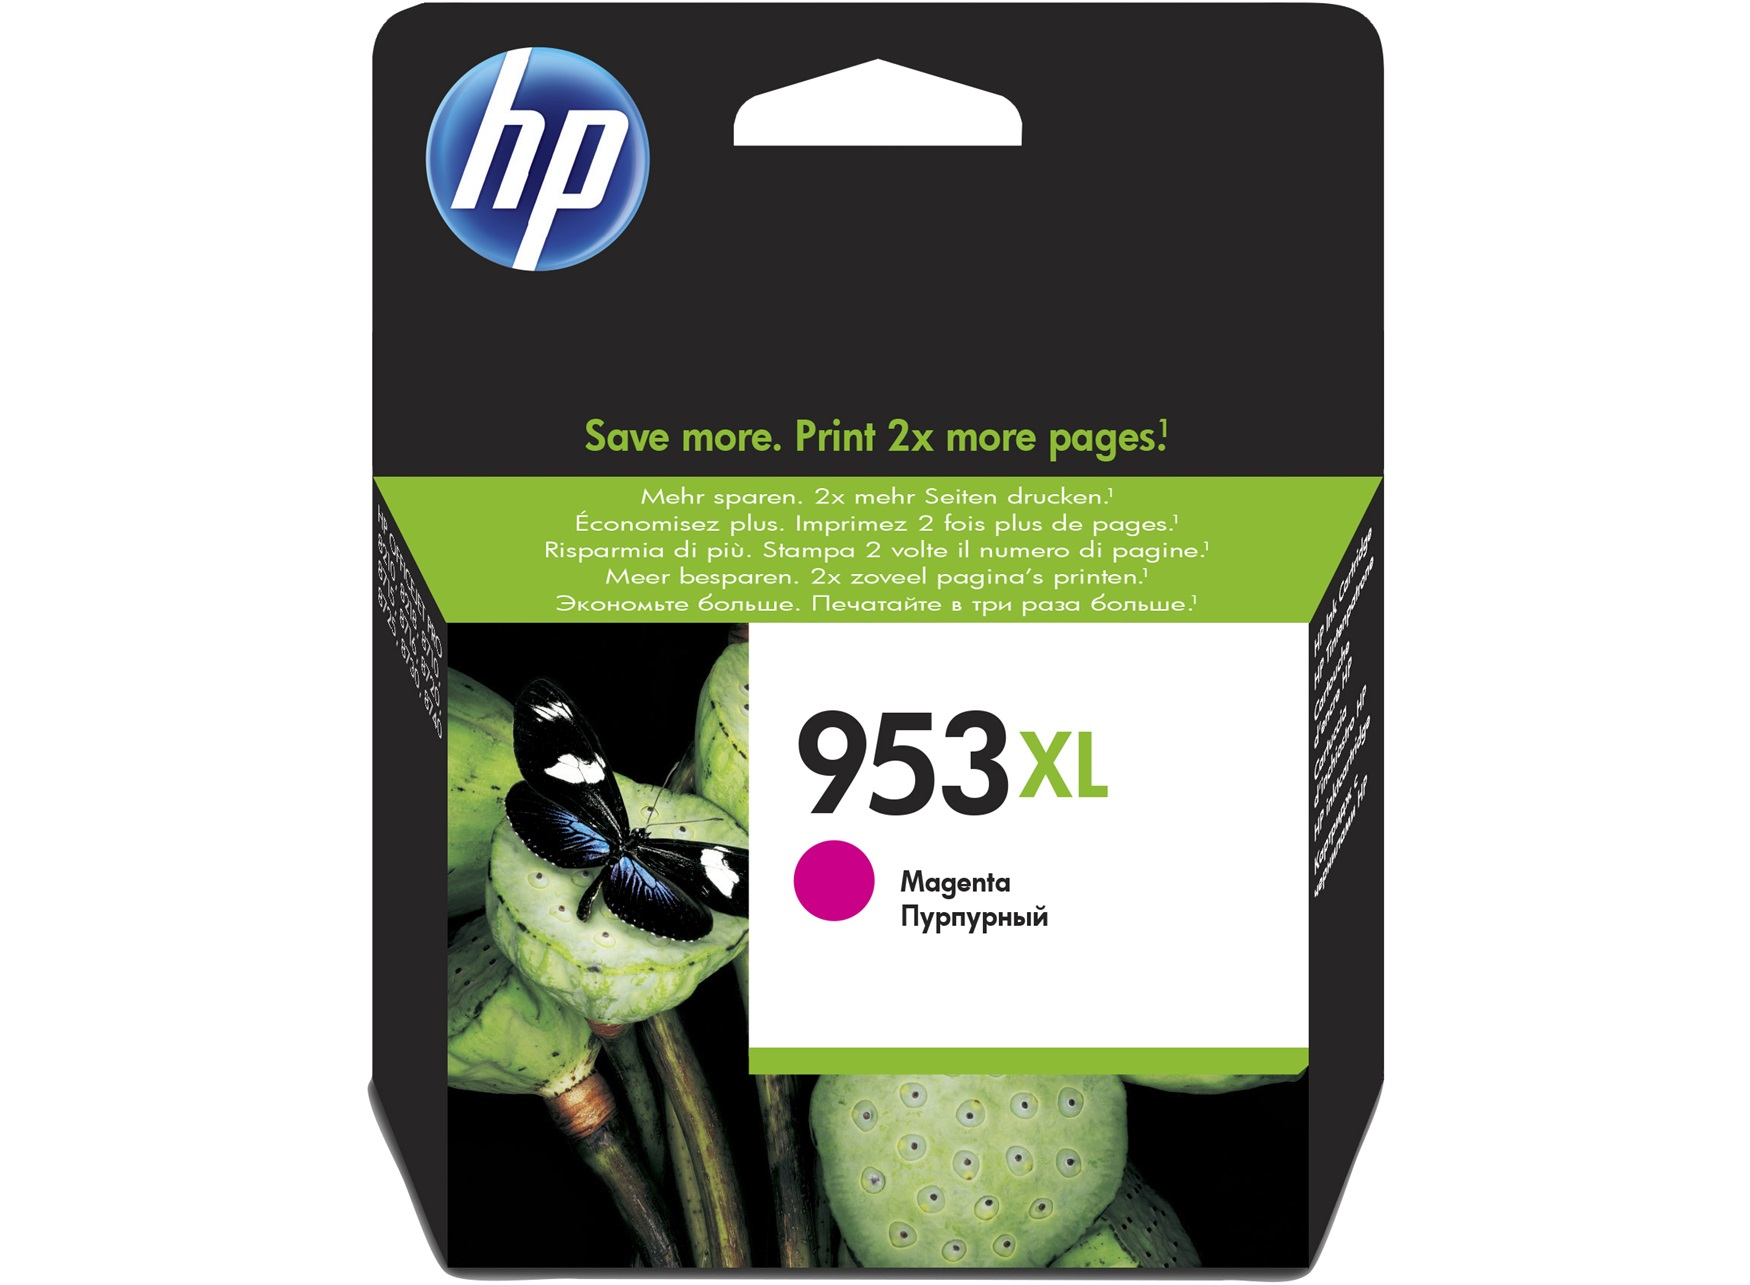 HP 953XL Magenta Original Ink Cartridge 20.5ml 1600pages Magenta ink cartridge